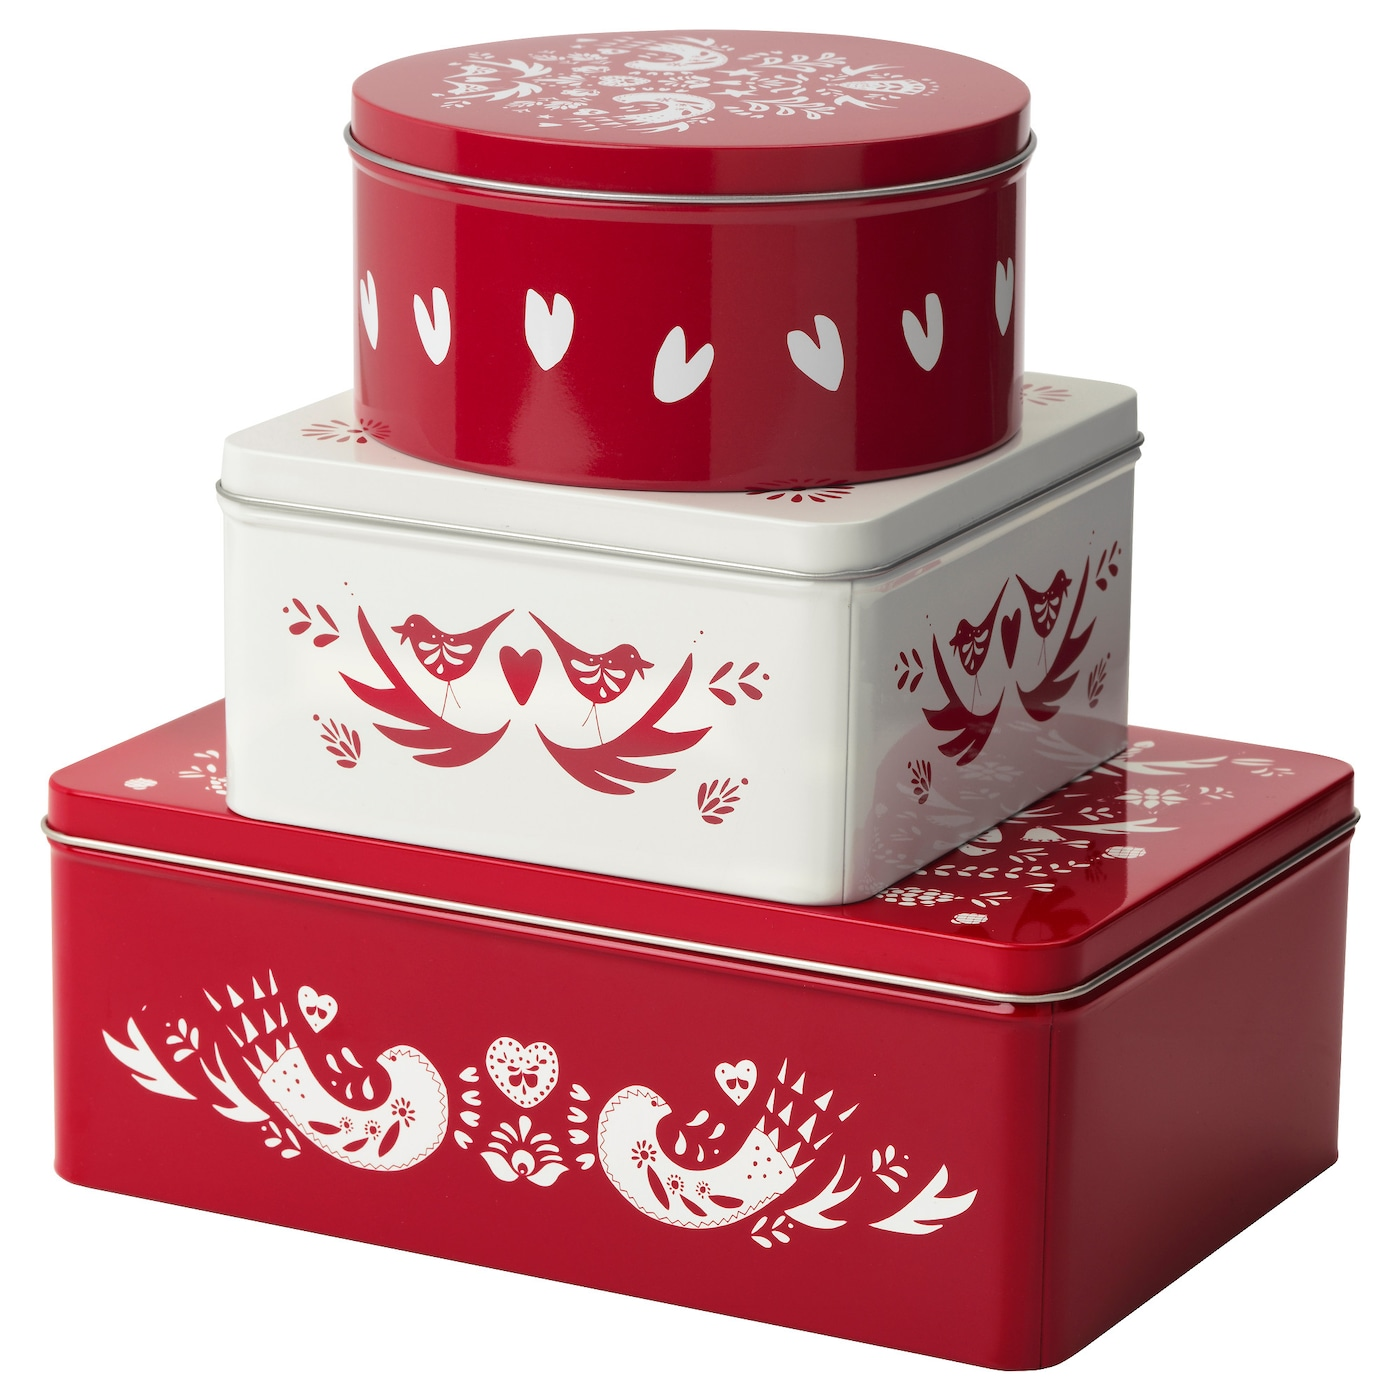 VINTER 2016 Tin With Lid Set Of 3 Red White IKEA